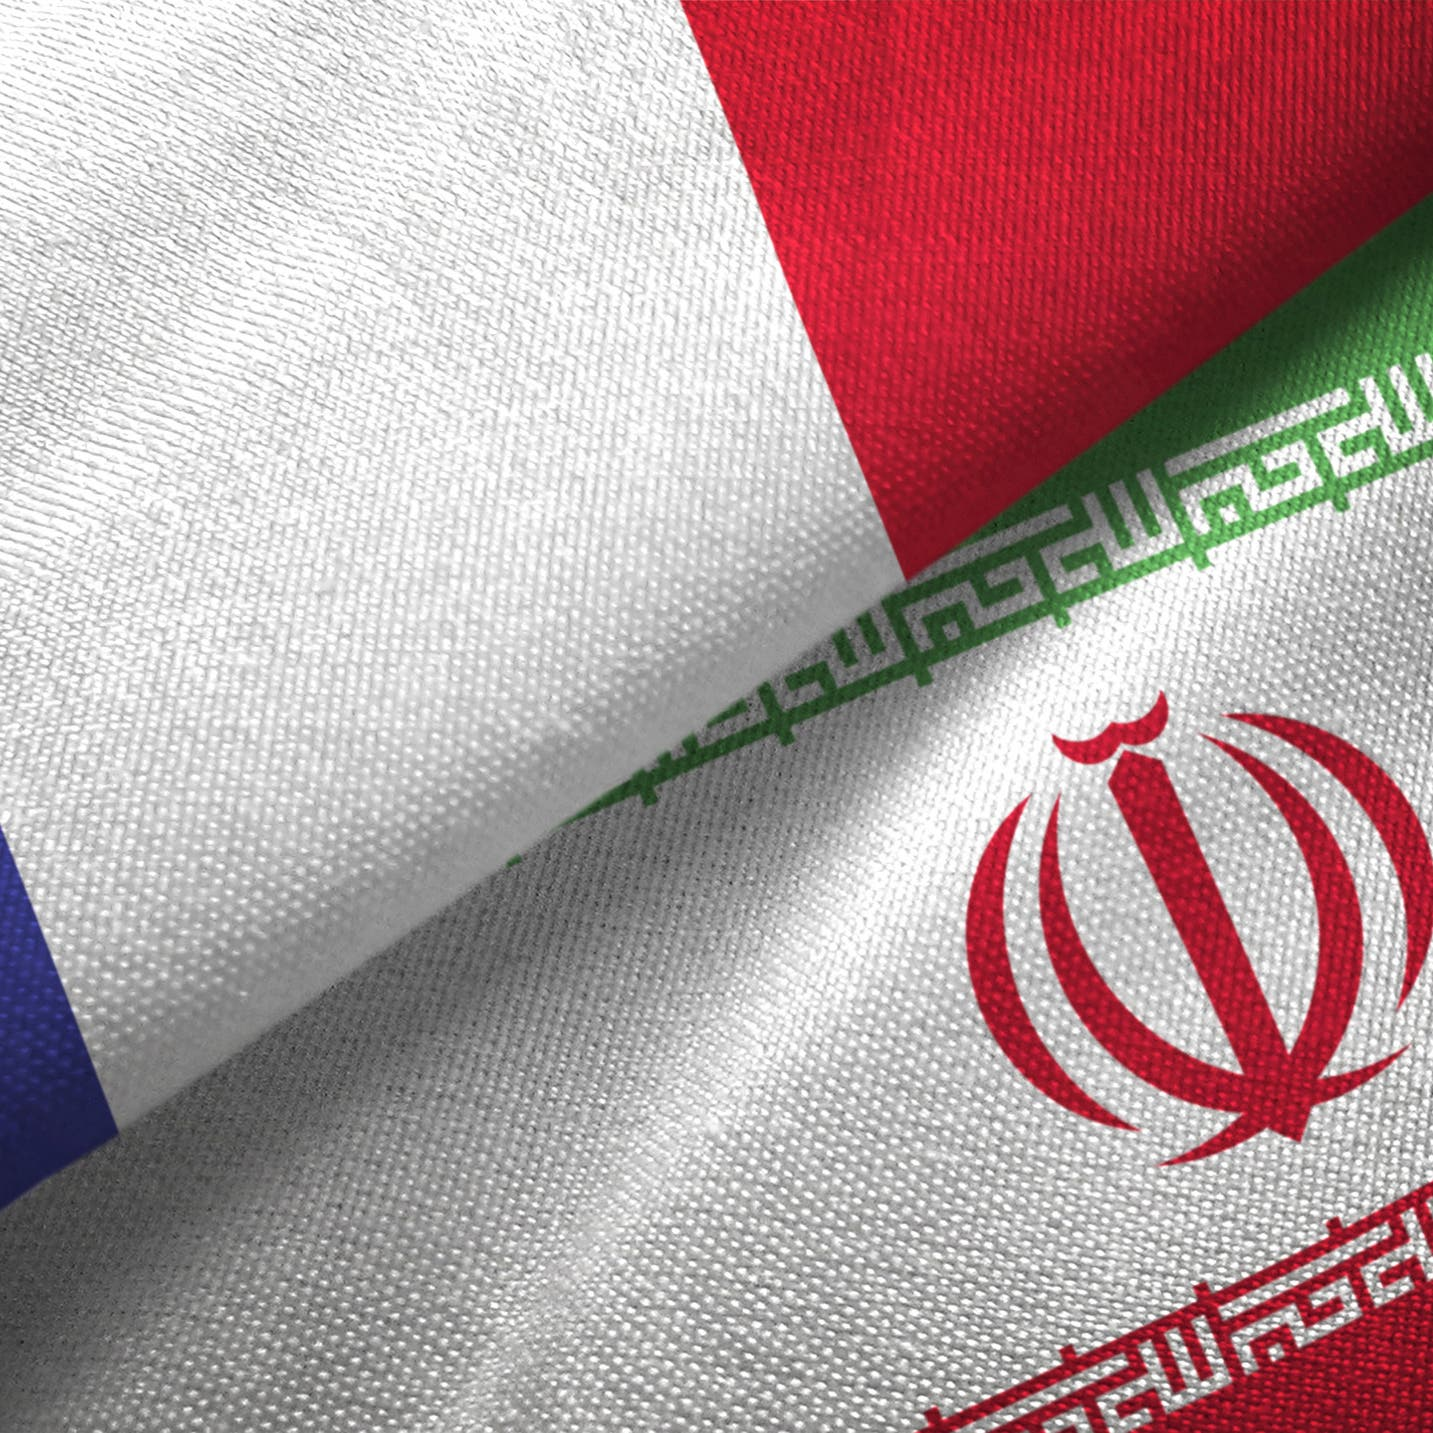 Frenchman held in Iran on spy charges 'was a tourist,' says his sister